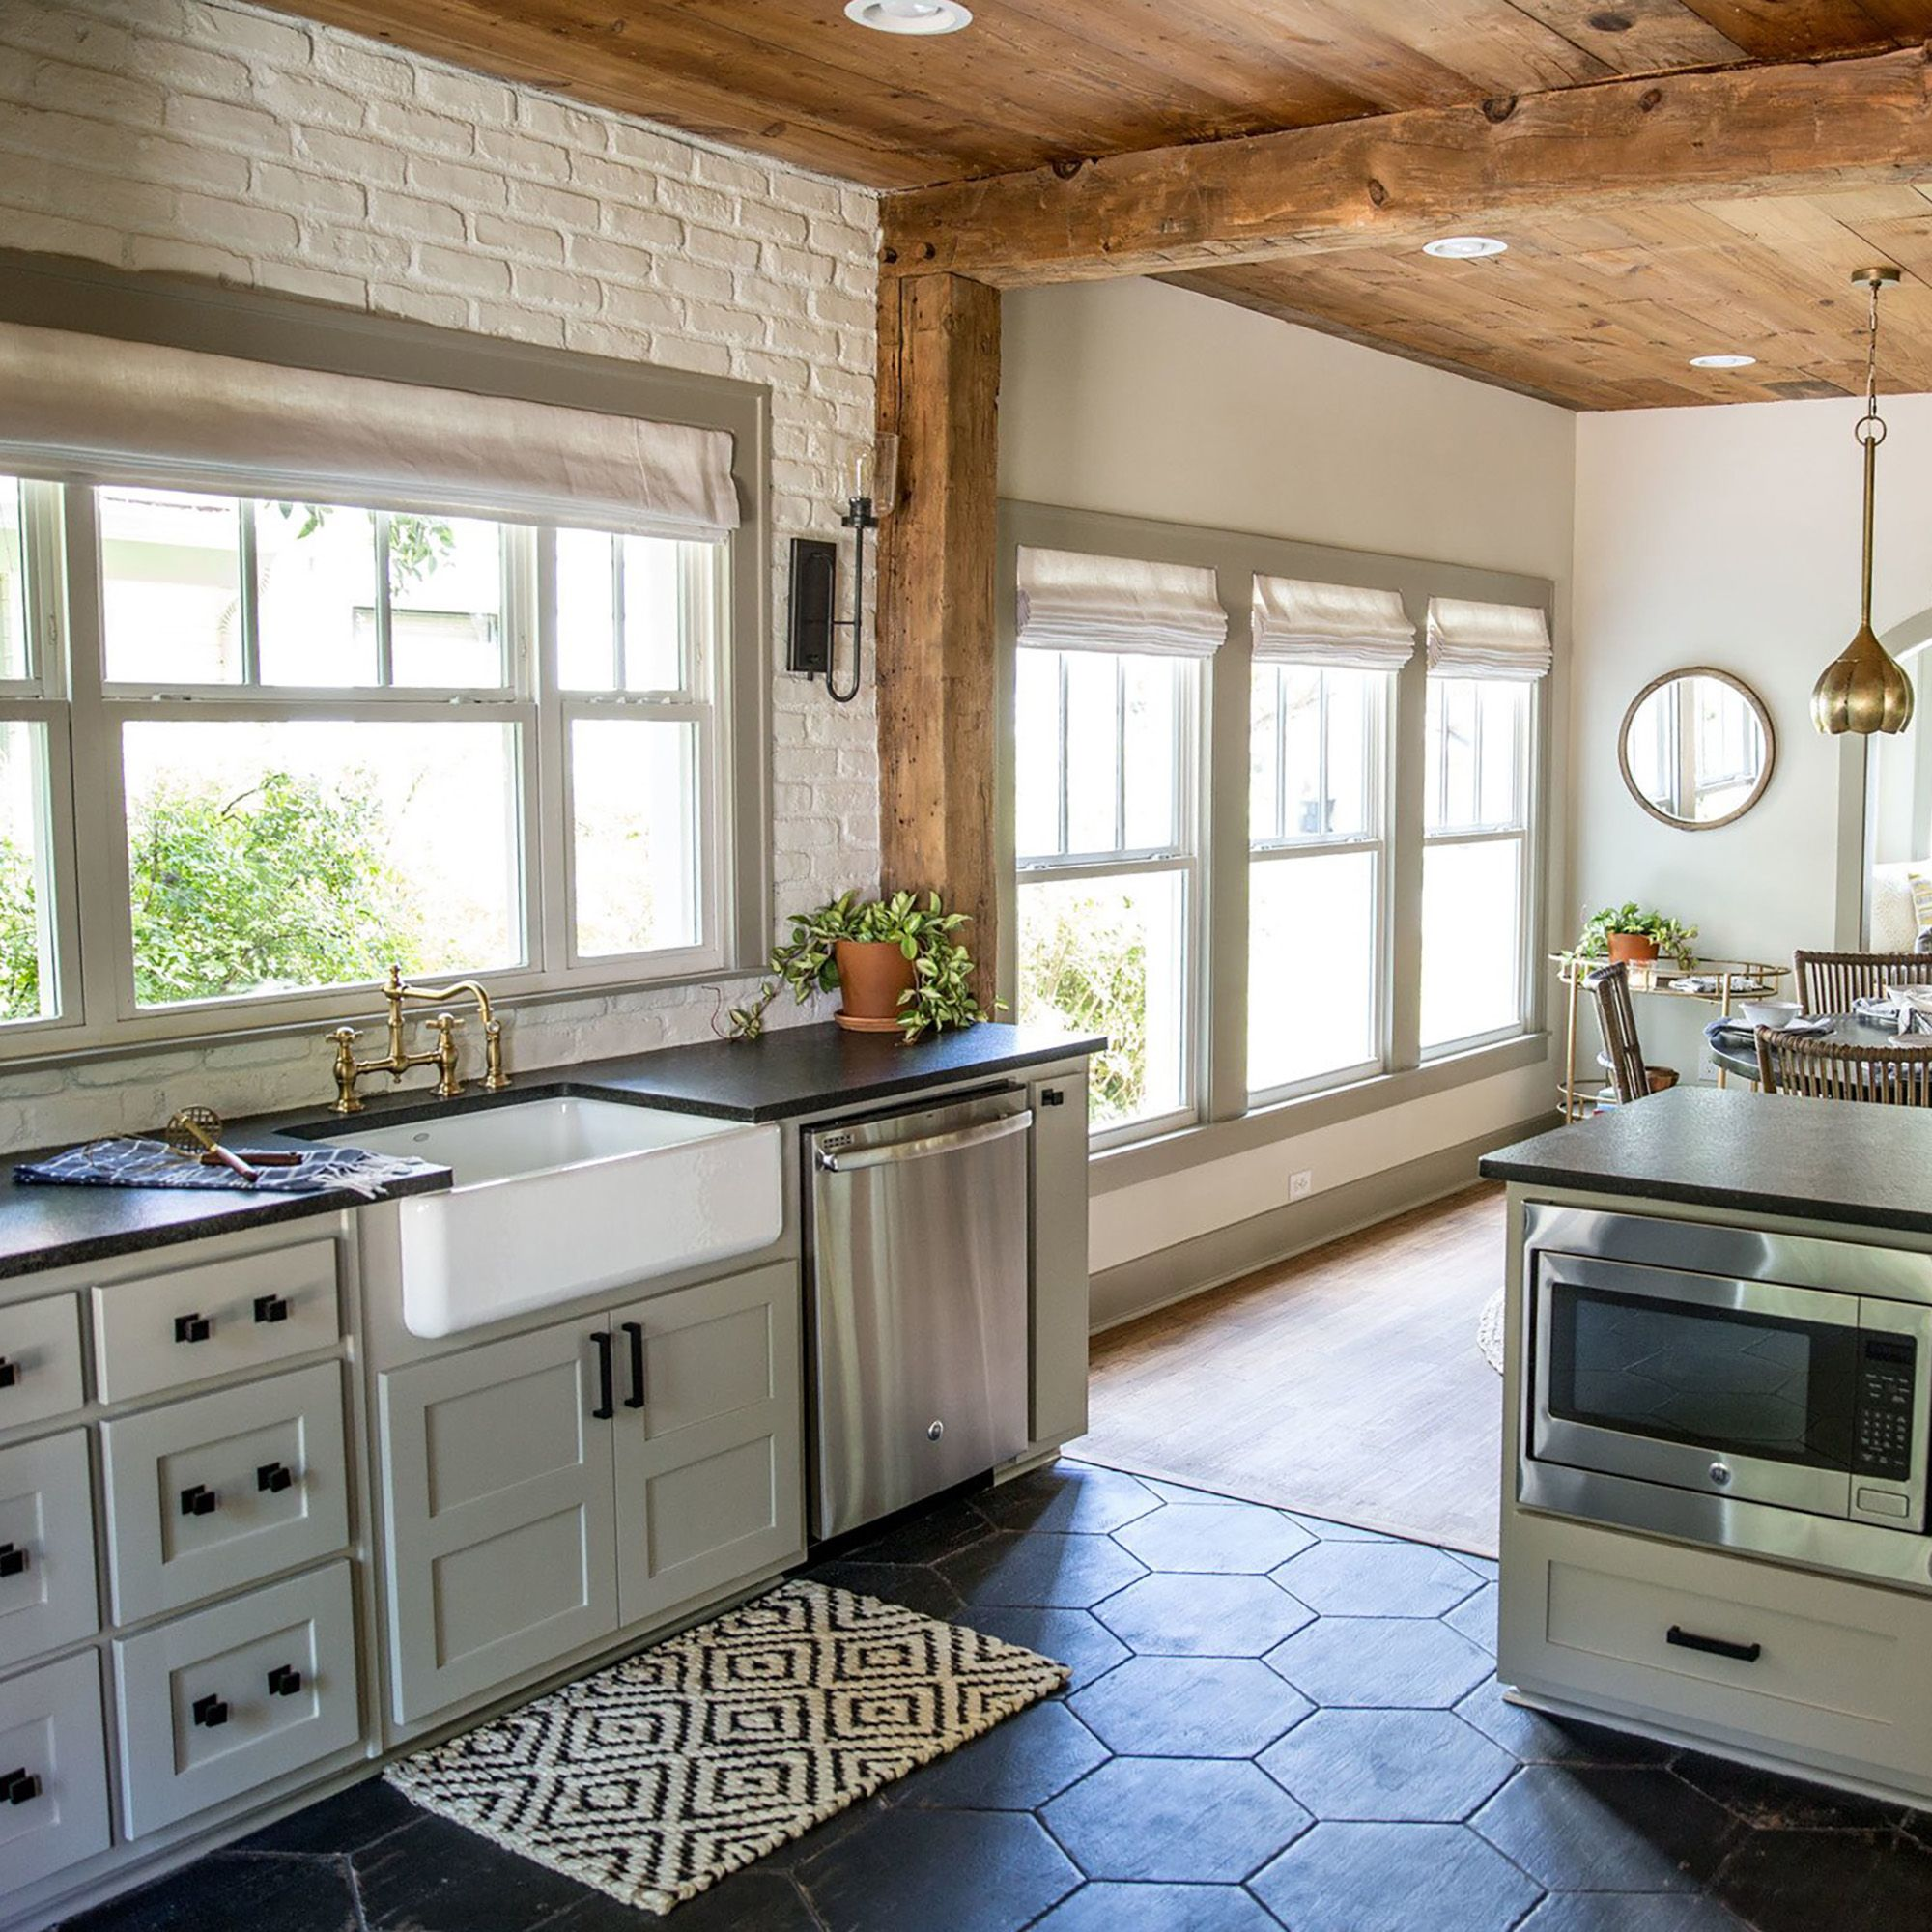 Koni Brick Old Chicago Fixer Upper Kitchen Kitchen Remodel